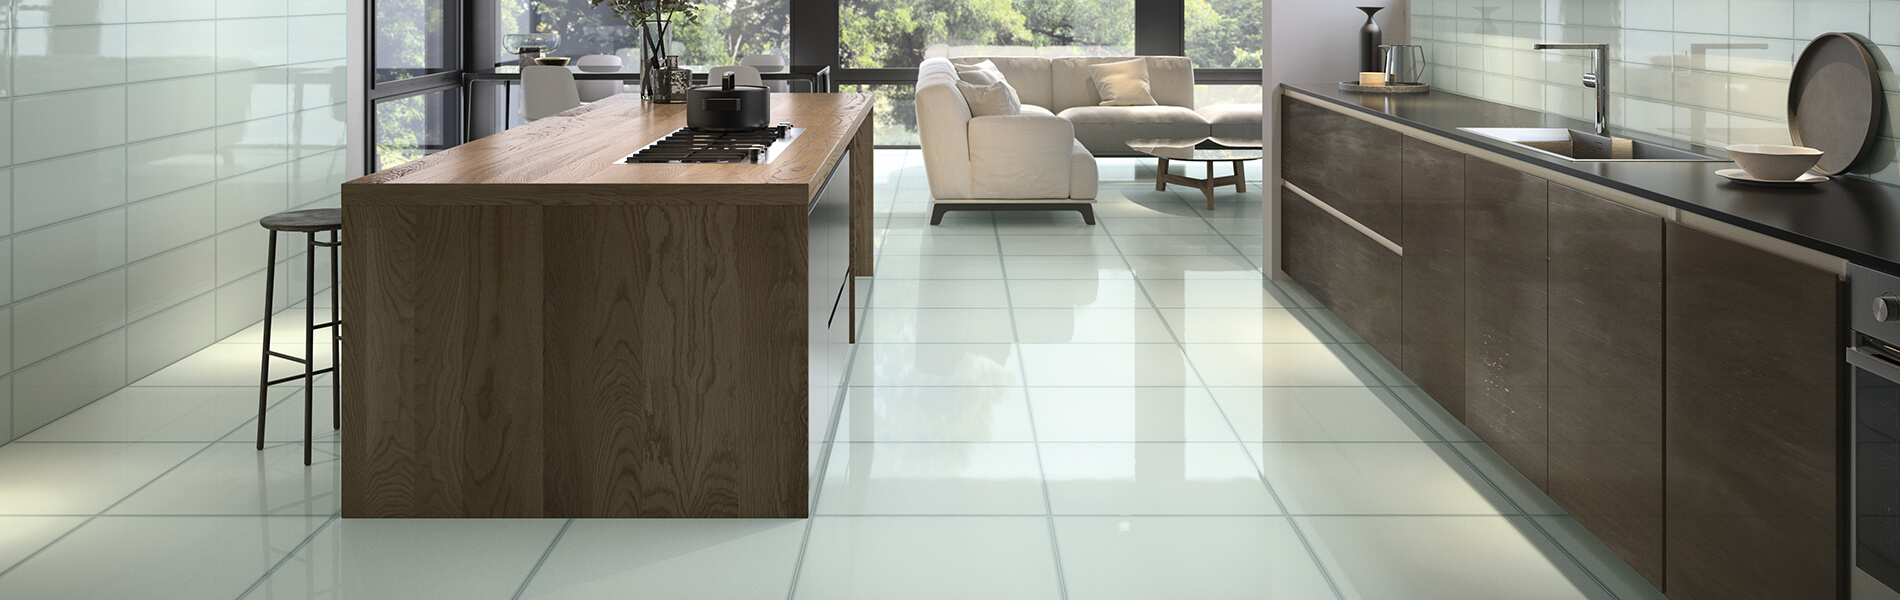 vetri refin porcelain glass look tile